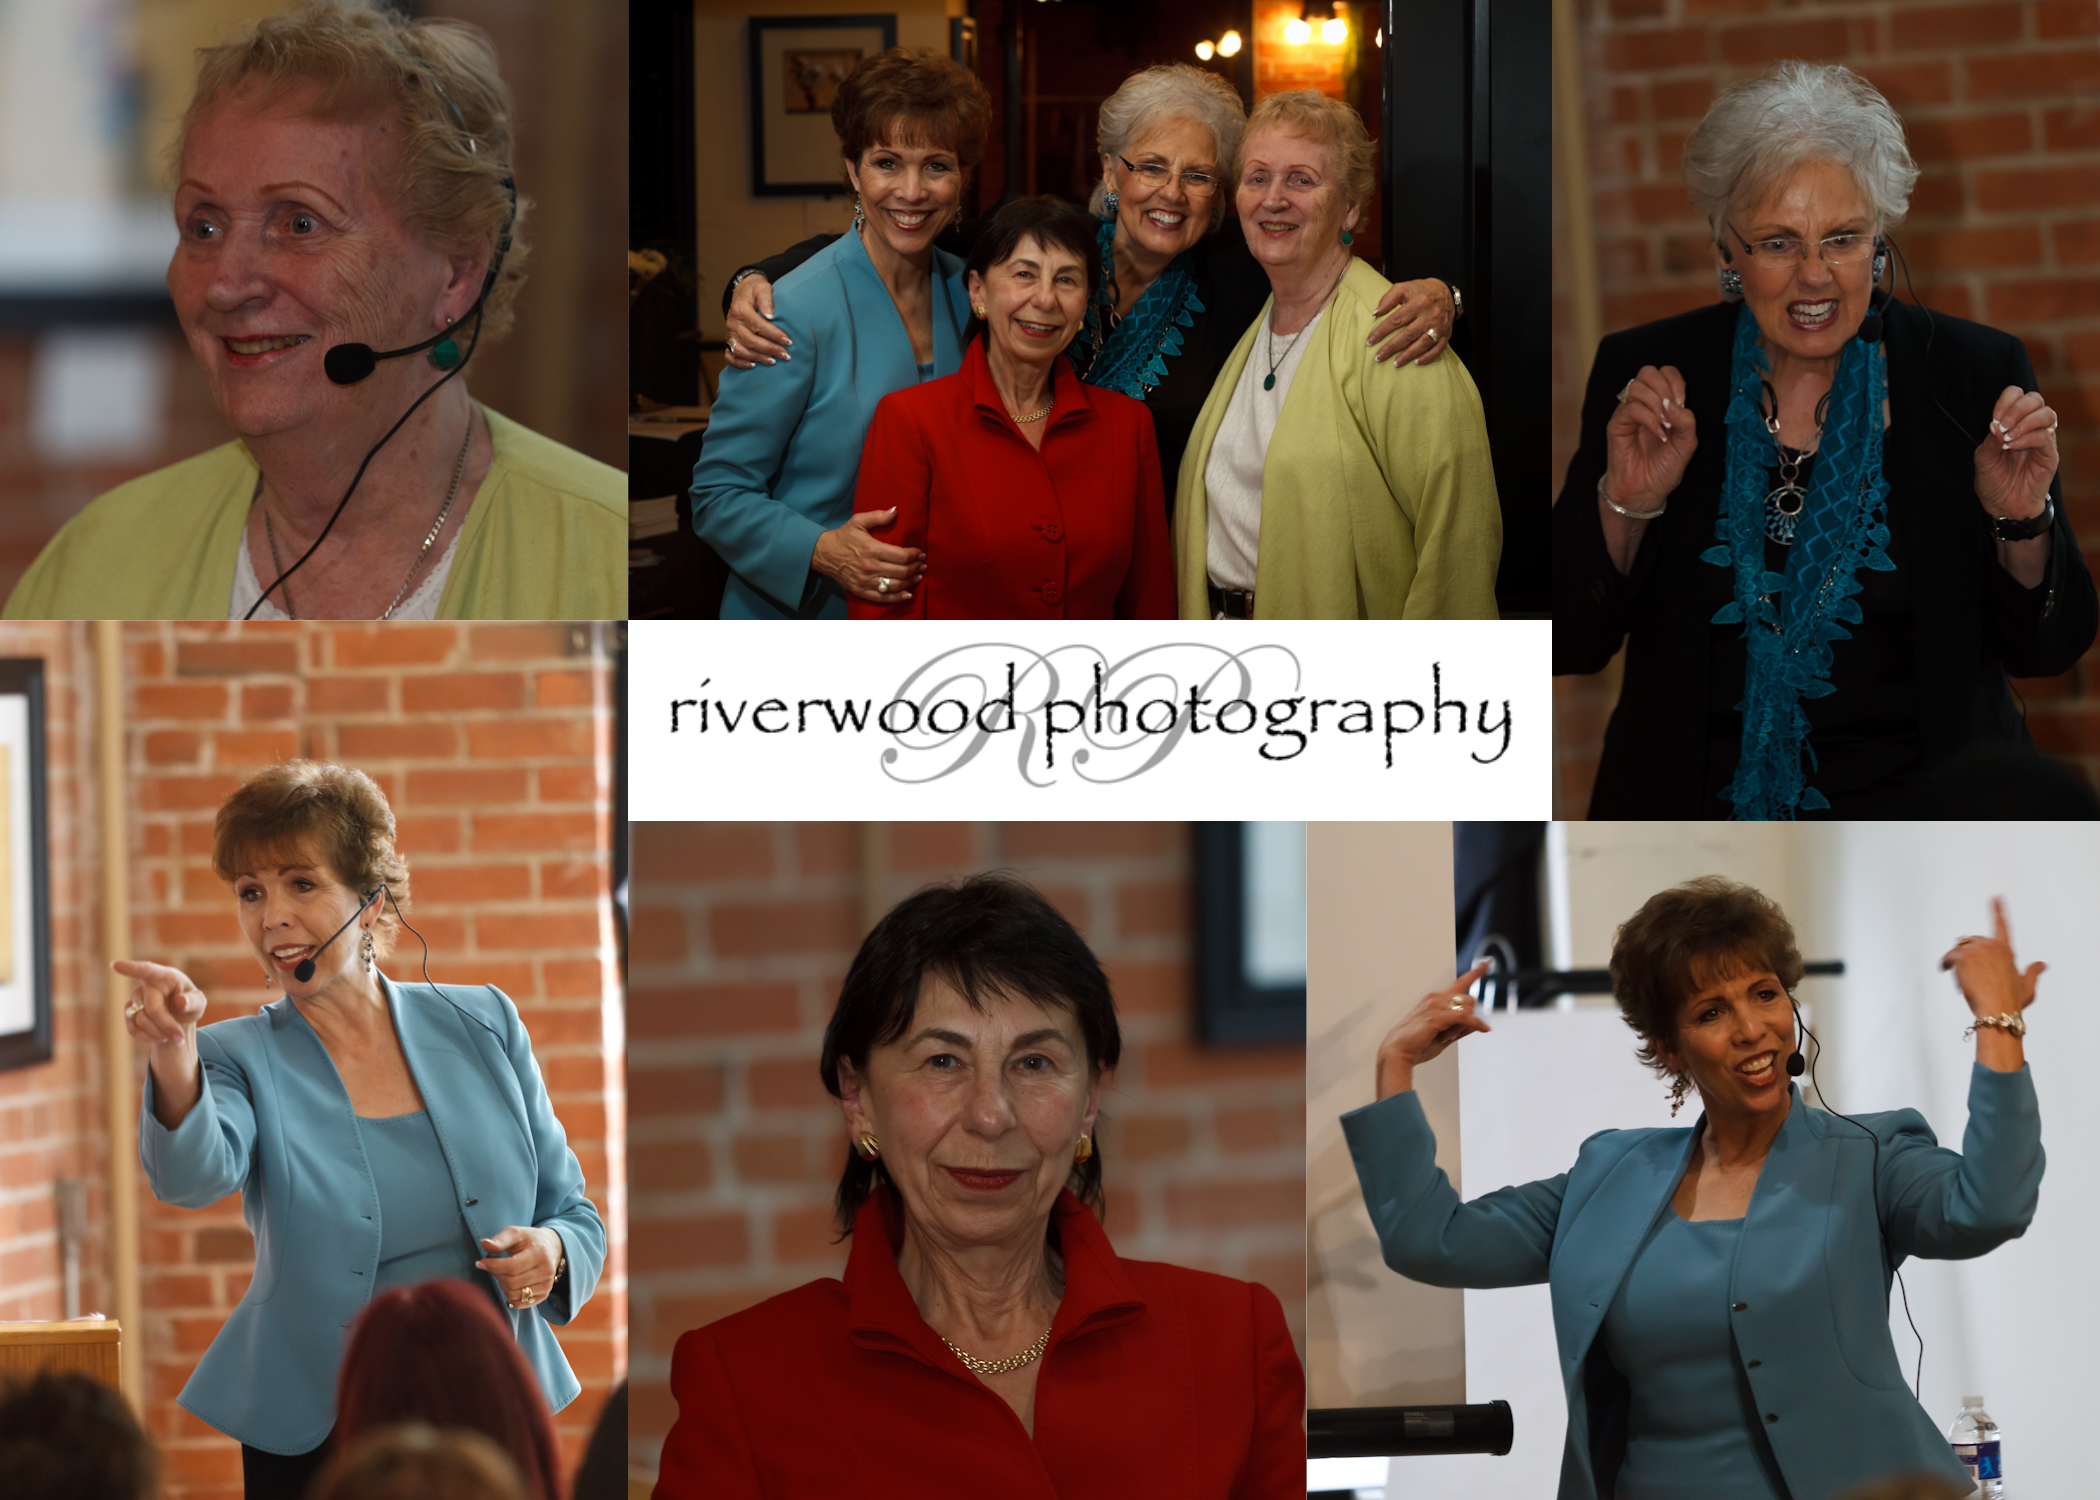 Girls Night Out! Calgary | A Networking Event from The Women's Information Network Online